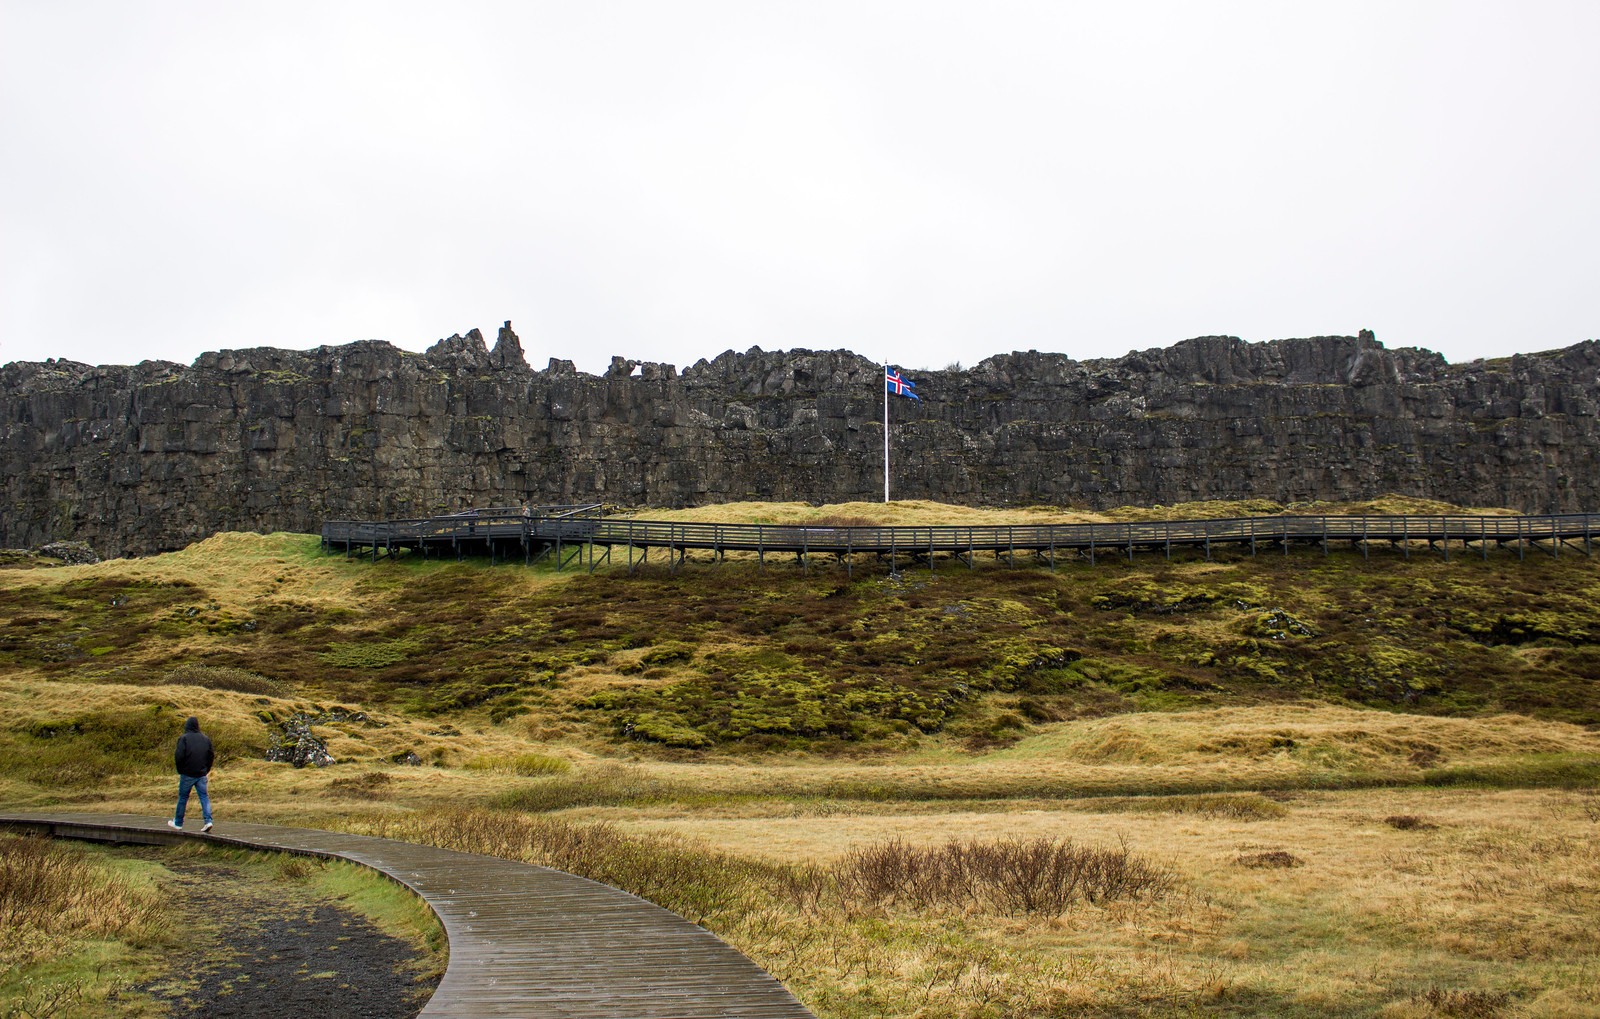 Thingvellir National Park in Iceland - Þingvellir National Park, a UNESCO World Heritage Site